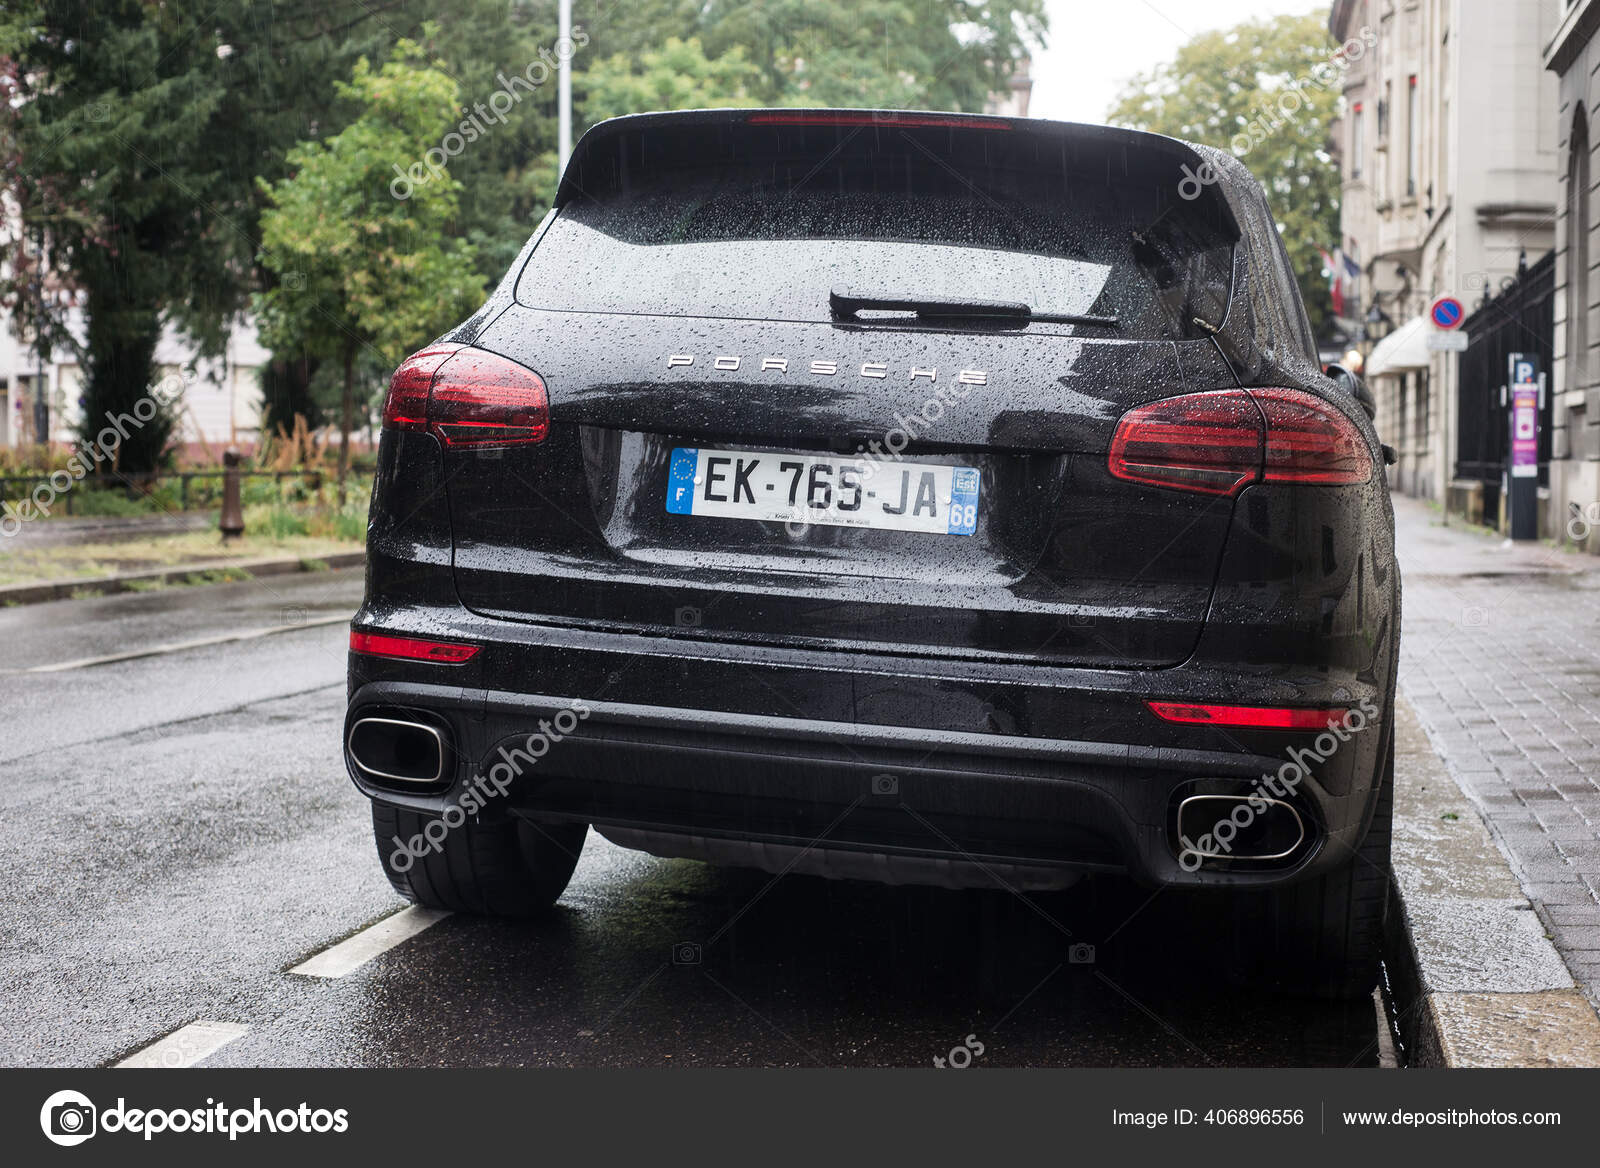 Mulhouse France August 2020 Rear View Black Porsche Cayenne Parked Stock Editorial Photo C Neydtstock 406896556